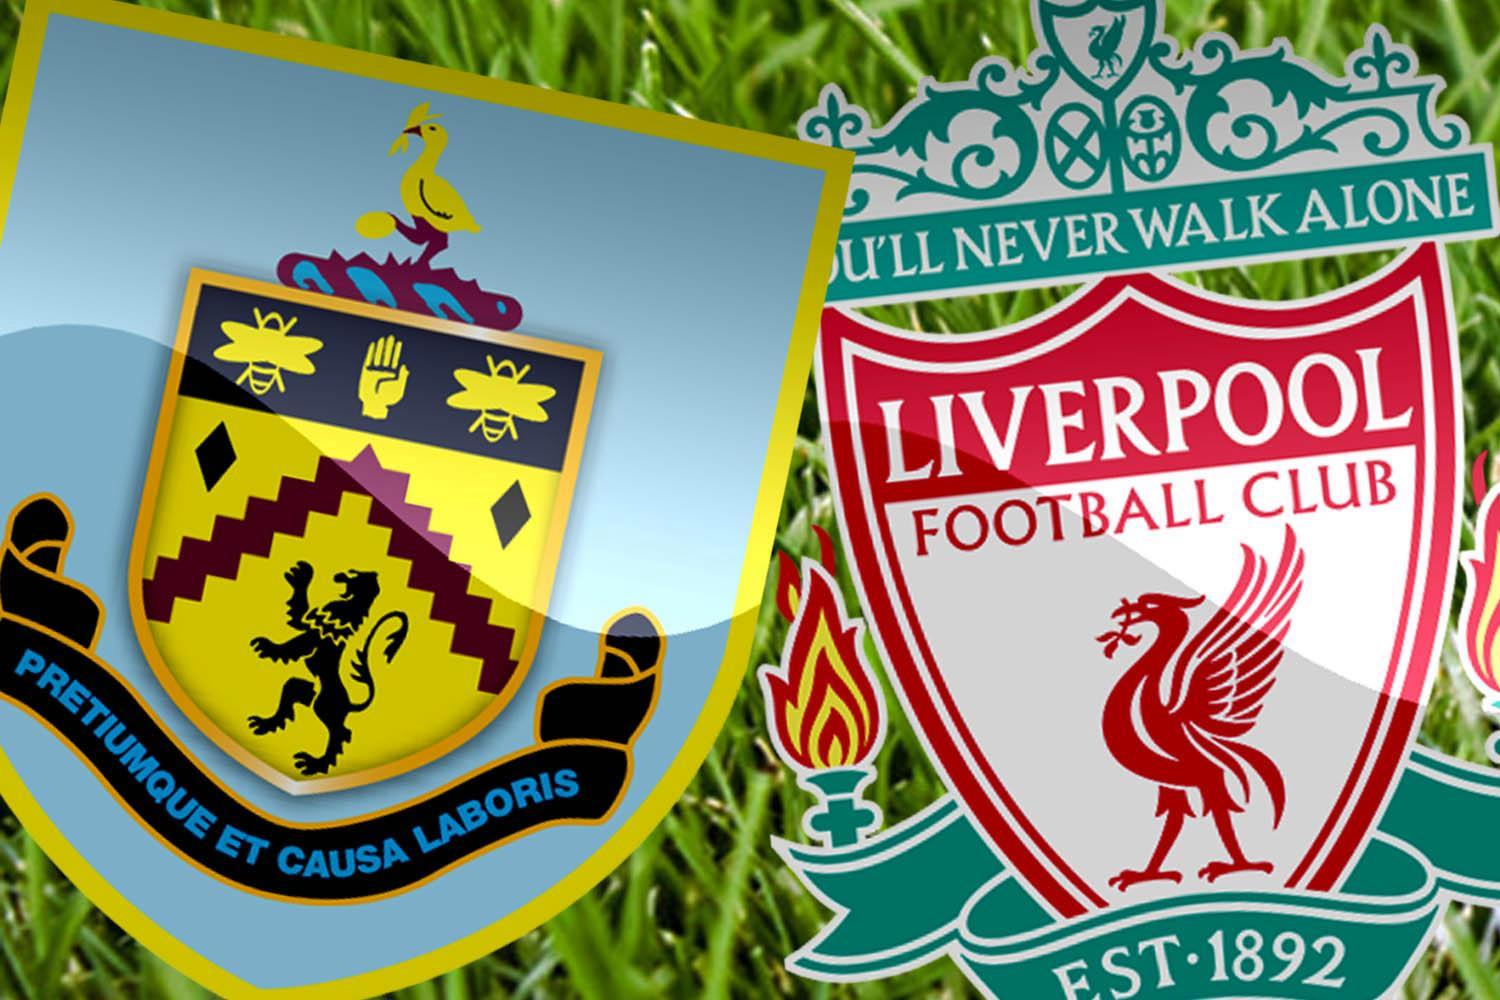 Burnley vs Liverpool LIVE SCORE: Latest updates and commentary for the Premier League clash